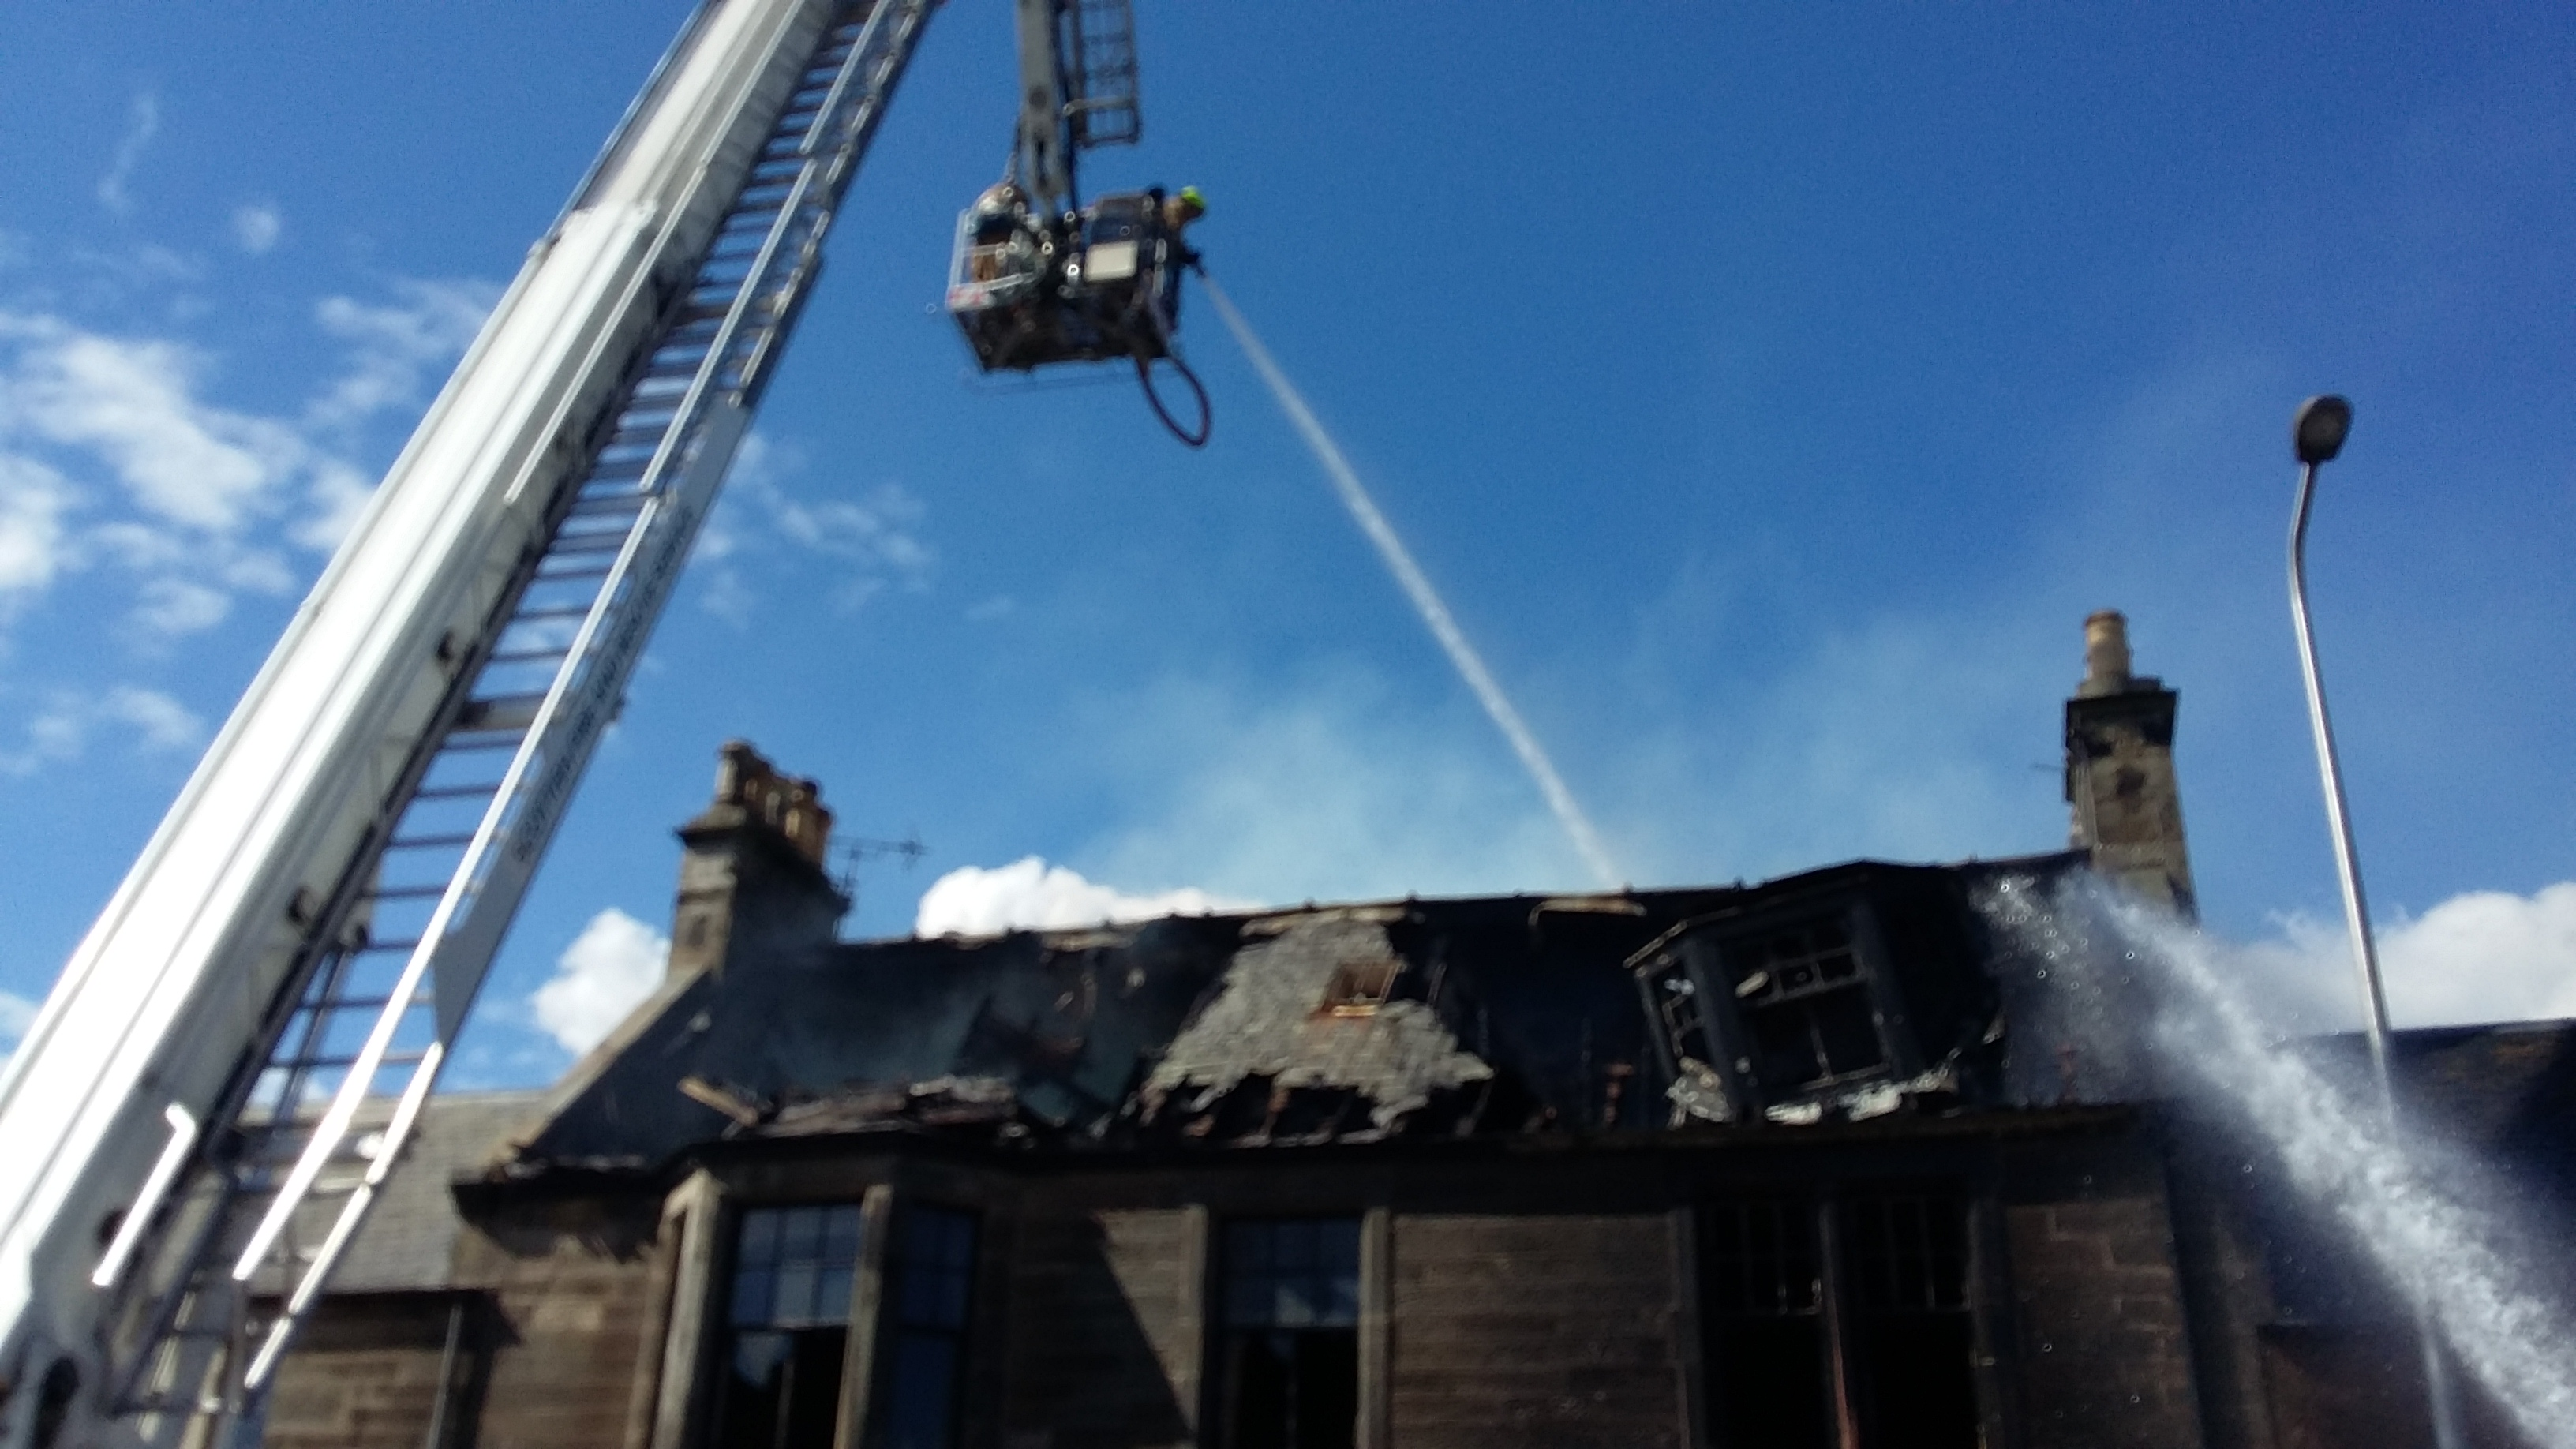 Firefighters tackle building fire in Elie, Fife